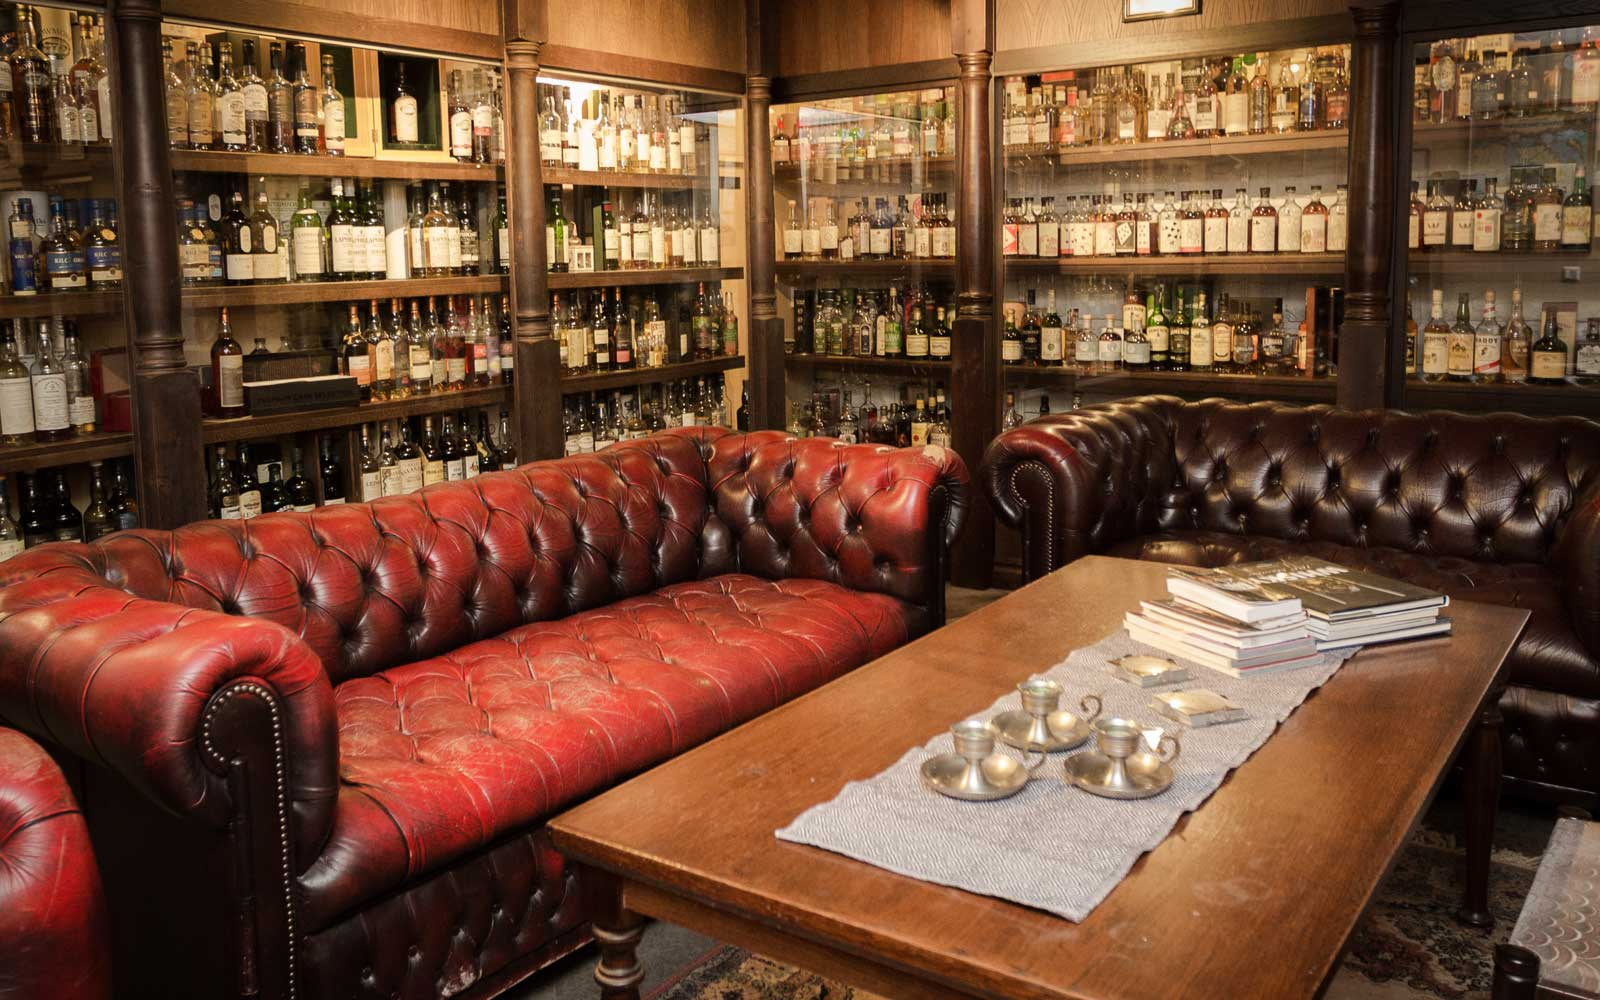 Head to Hotel Skansen's whisky basement and you'll be surrounded by thousands of bottles.